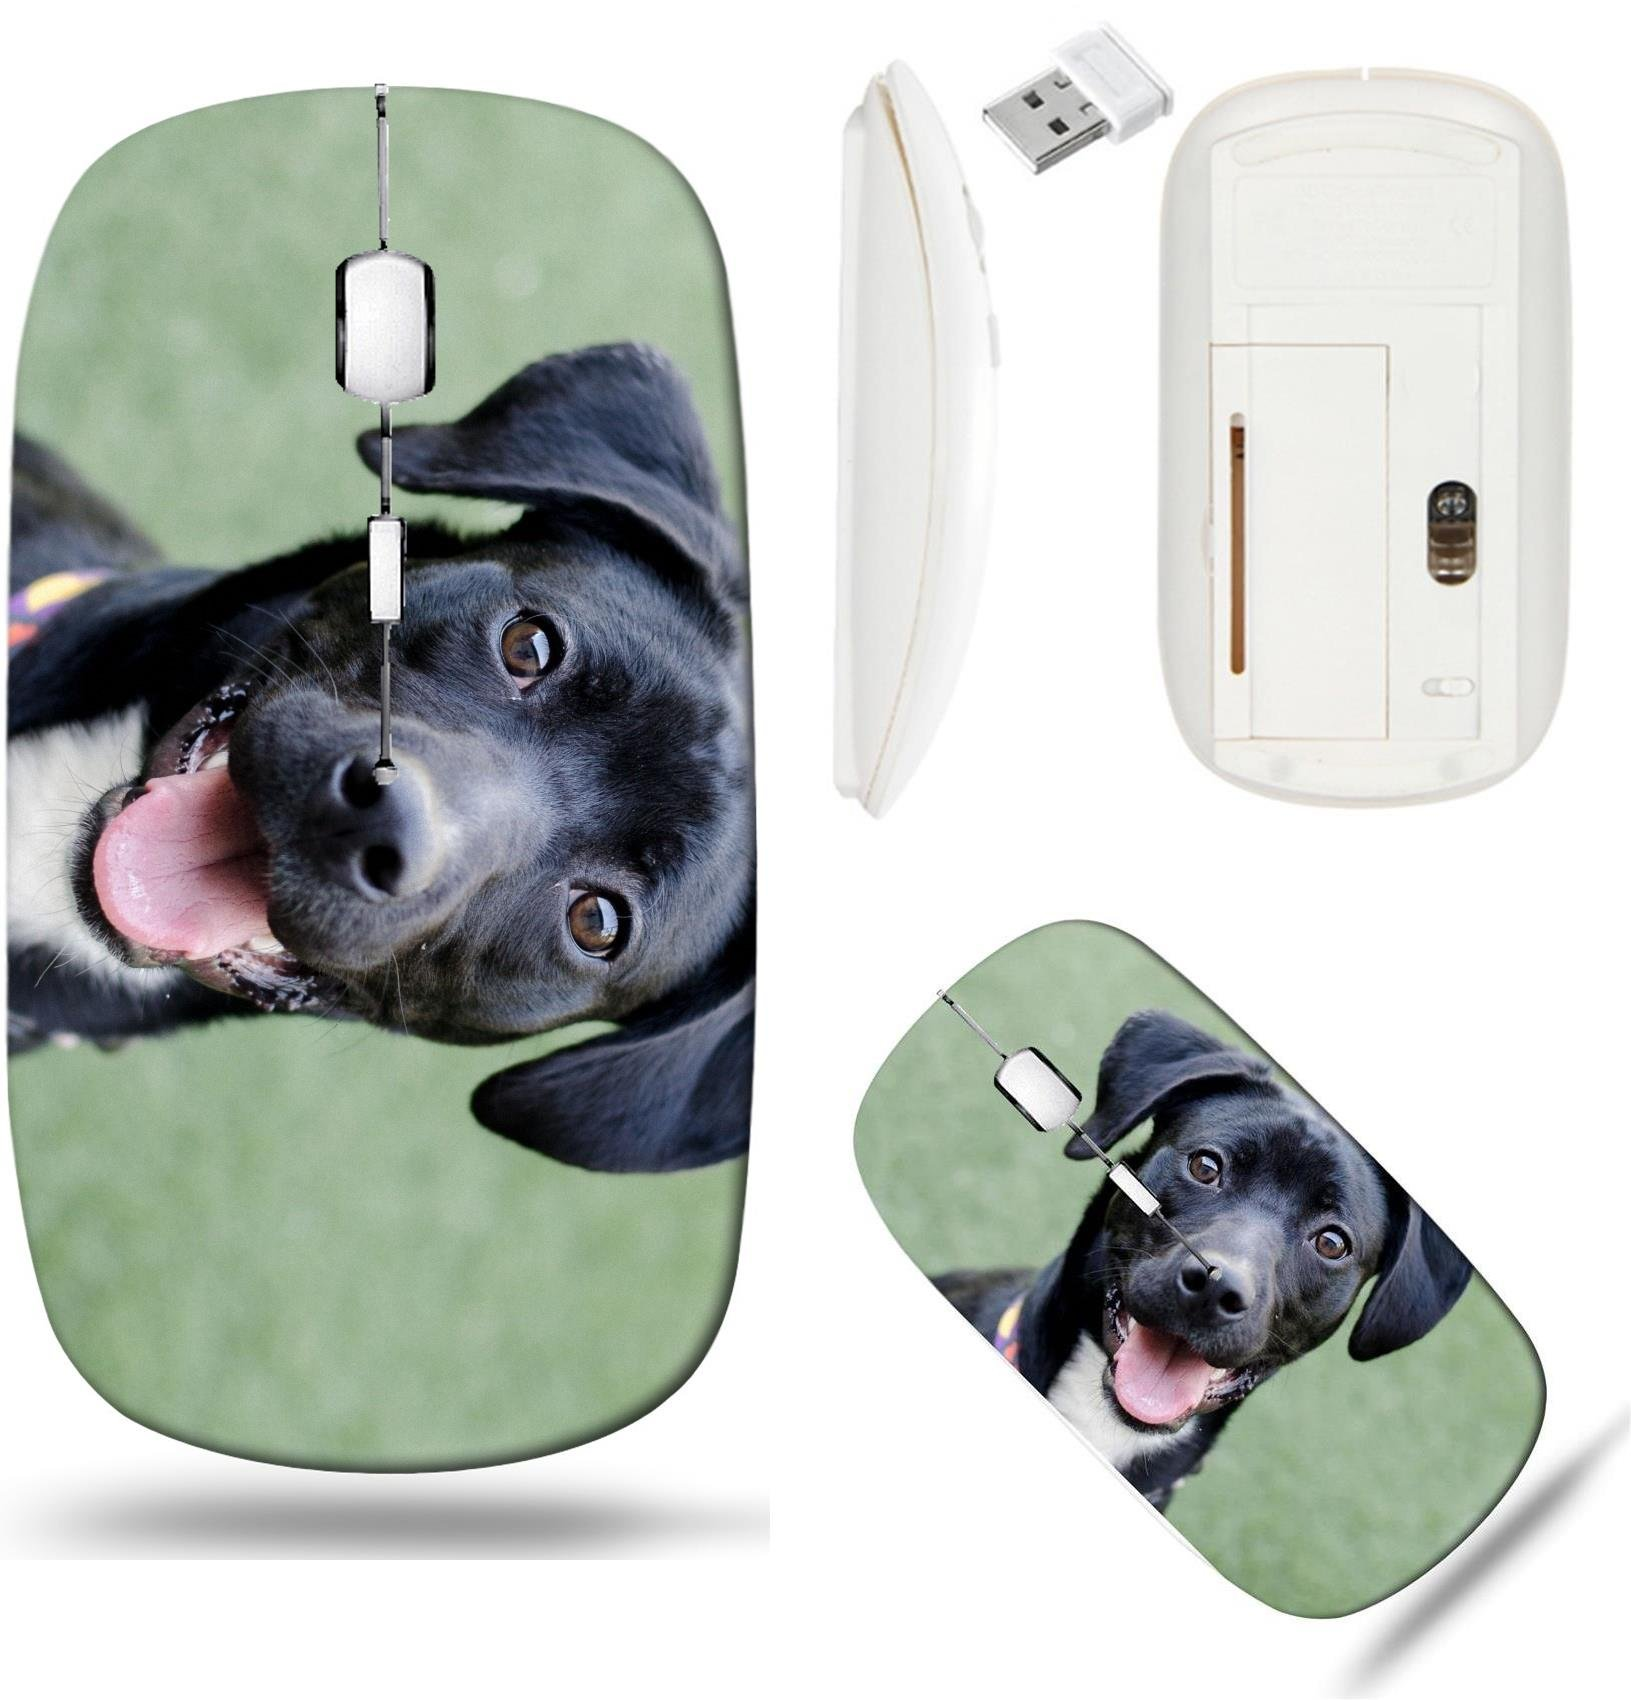 Liili Wireless Mouse White Base Travel 2.4G Wireless Mice with USB Receiver, Click with 1000 DPI for notebook, pc, laptop, computer, mac book ID: 28741721 black dog looking at camera on green backgrou